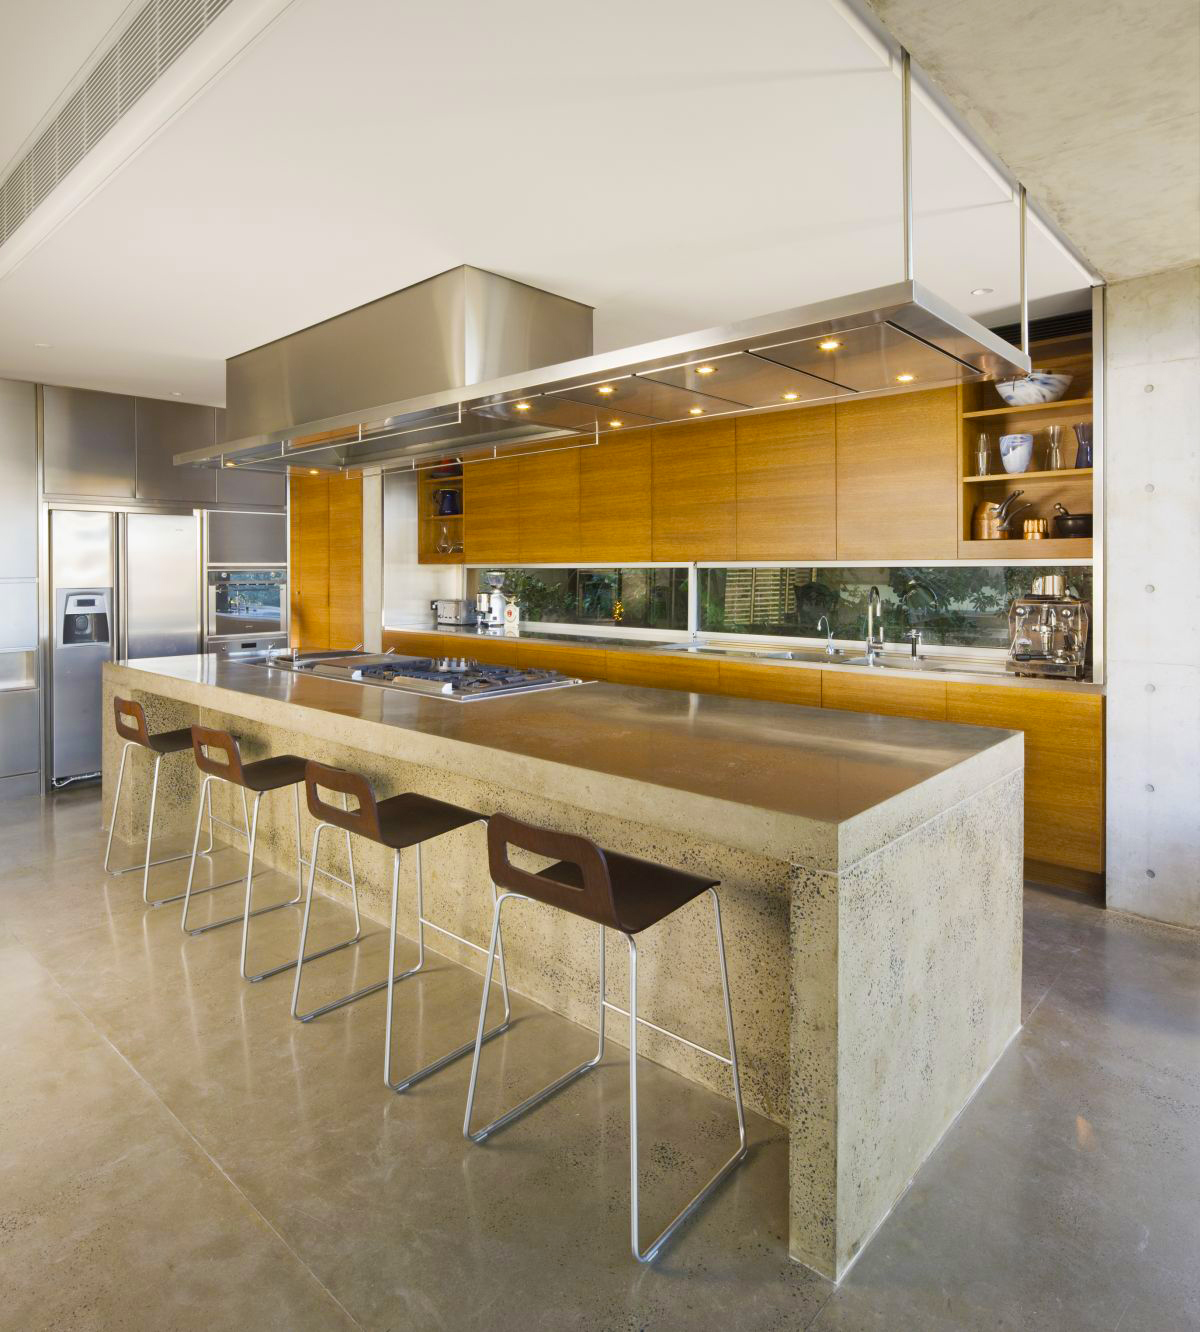 contemporary-kitchen-designs-ideas-to-remodling-kitchen-cabinet-designs-with-modern-large-kitchen-island-and-quartz-countertops